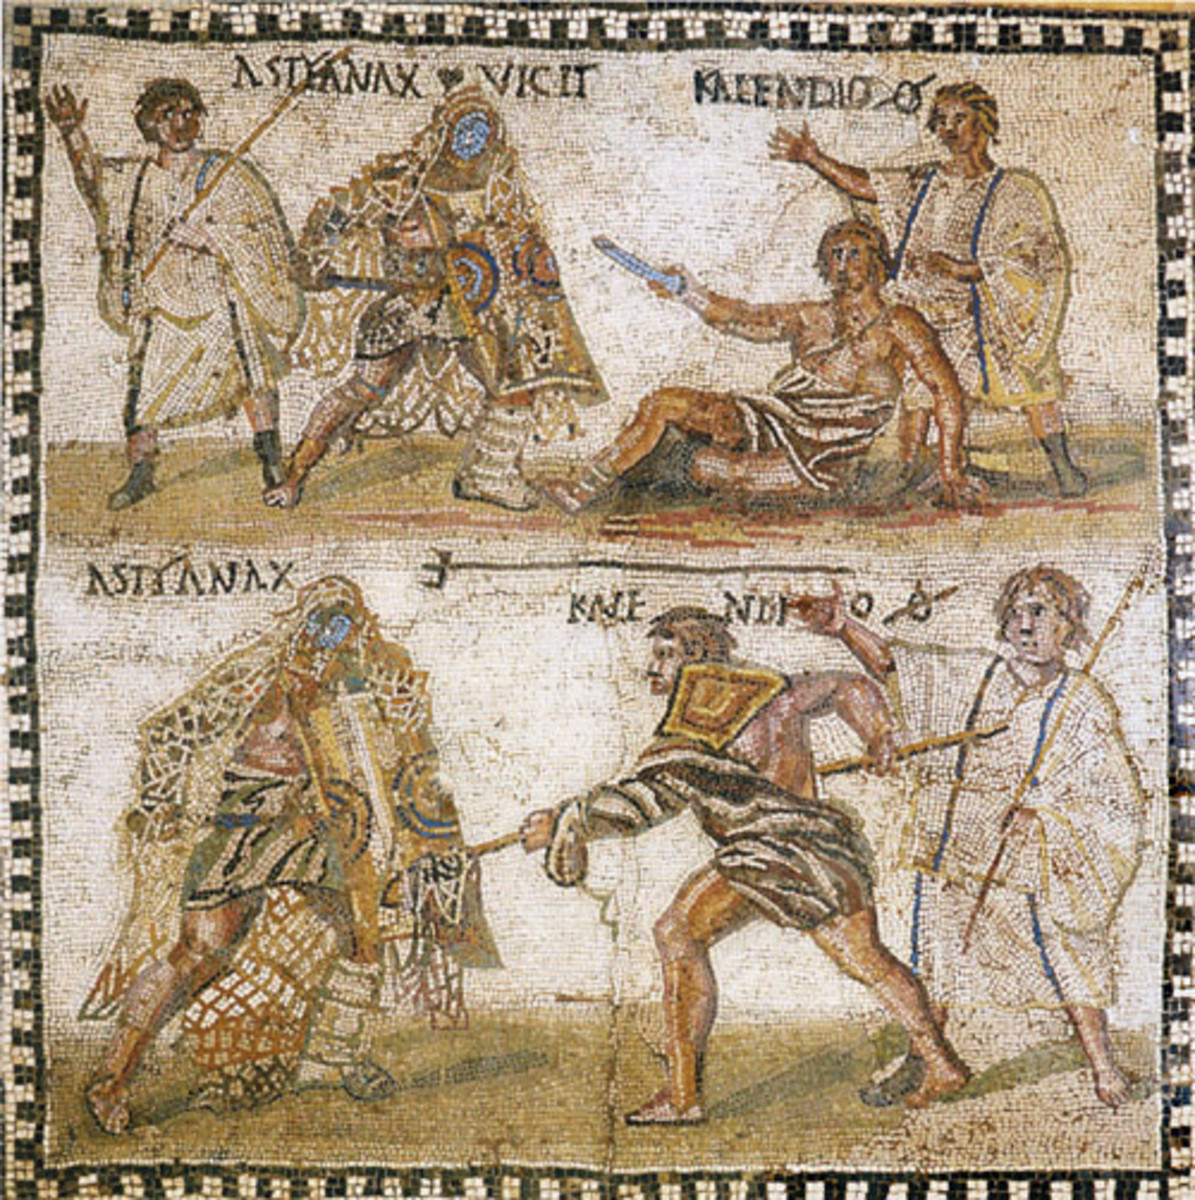 Two venatores fighting a tiger (5th century CE mosaic in the Great Palace of Constantinople)